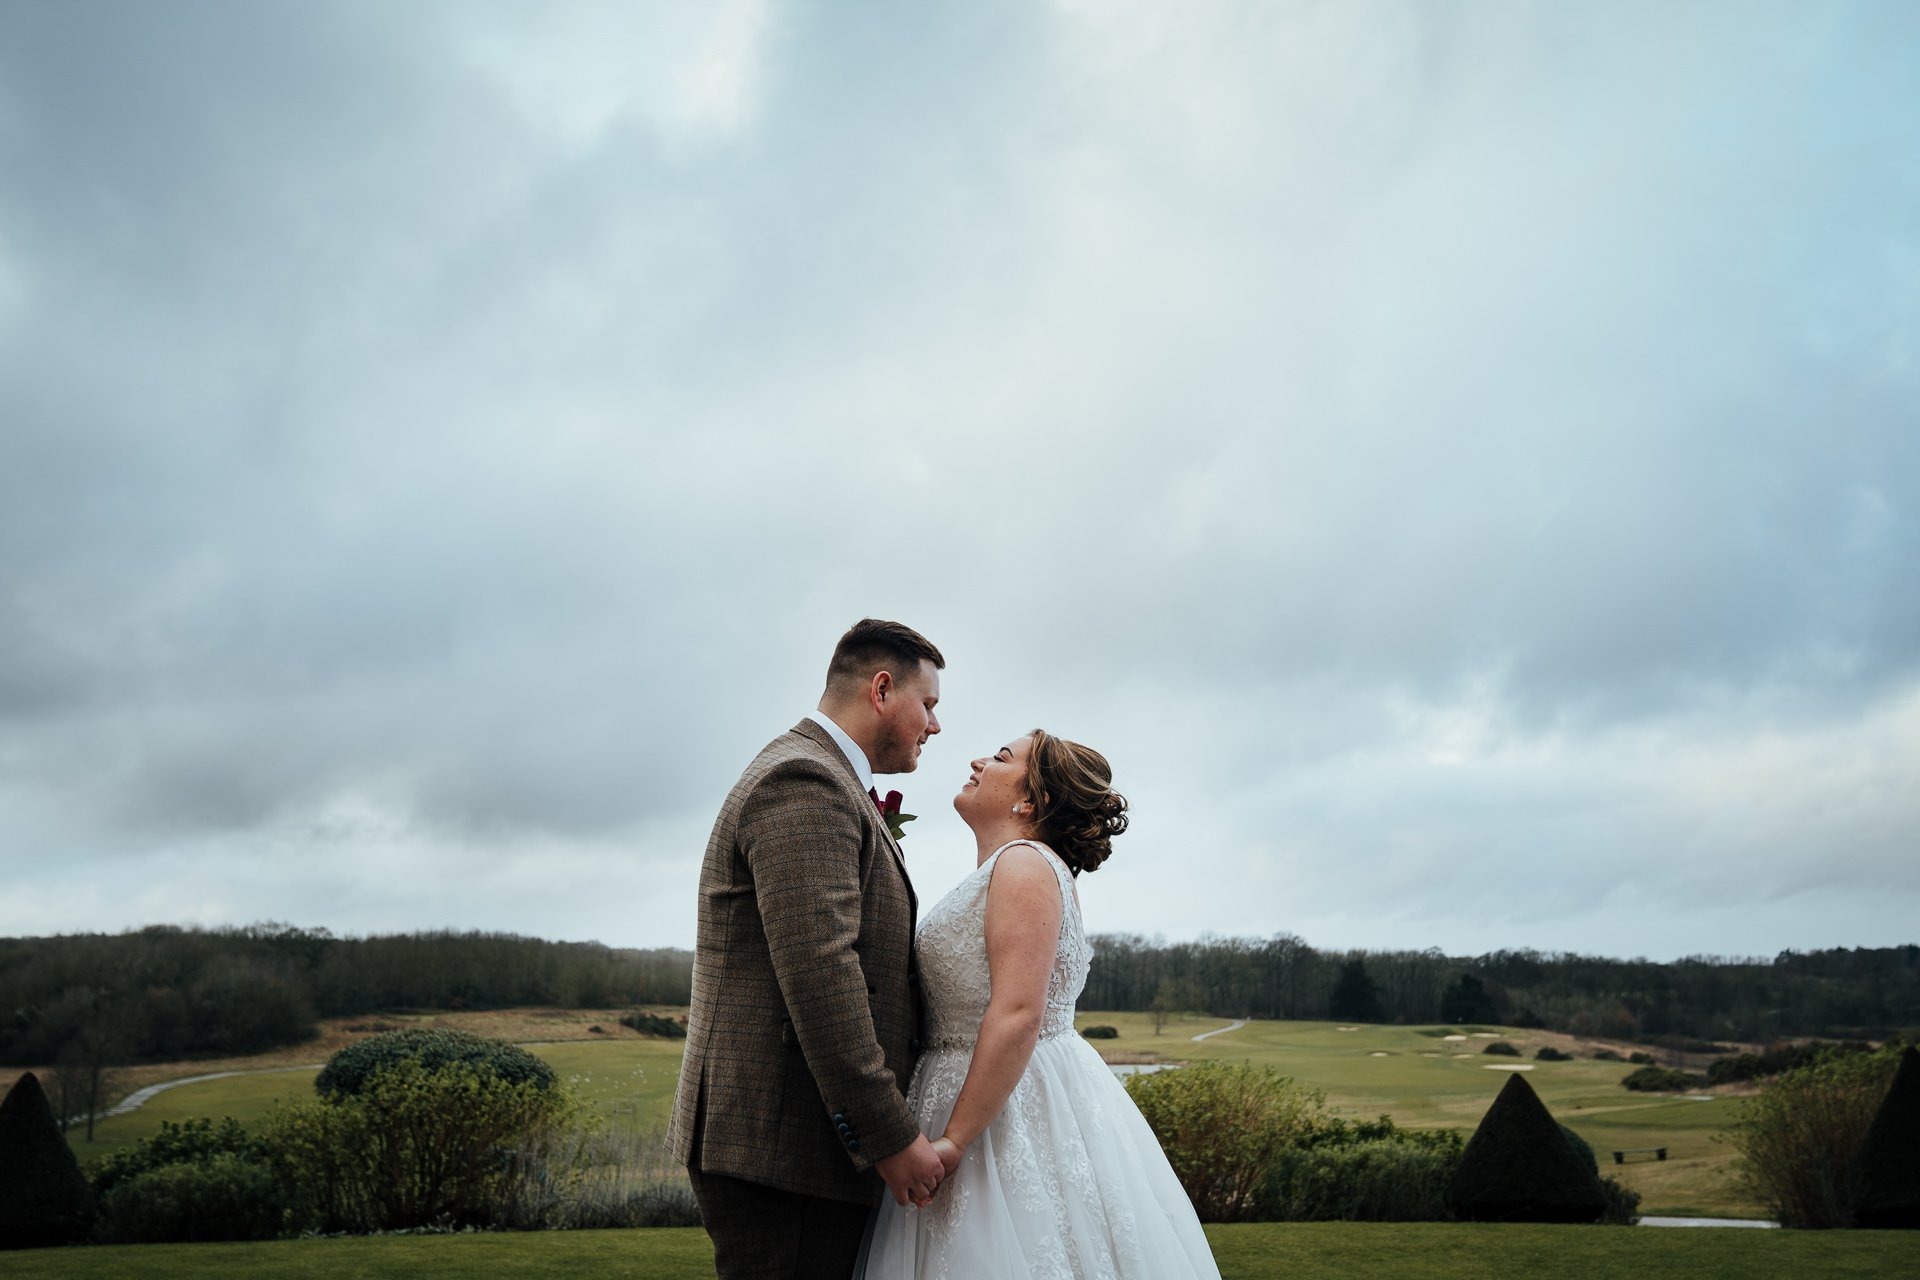 Bride and Groom embracing over looking the course at The London Golf Club, Kent